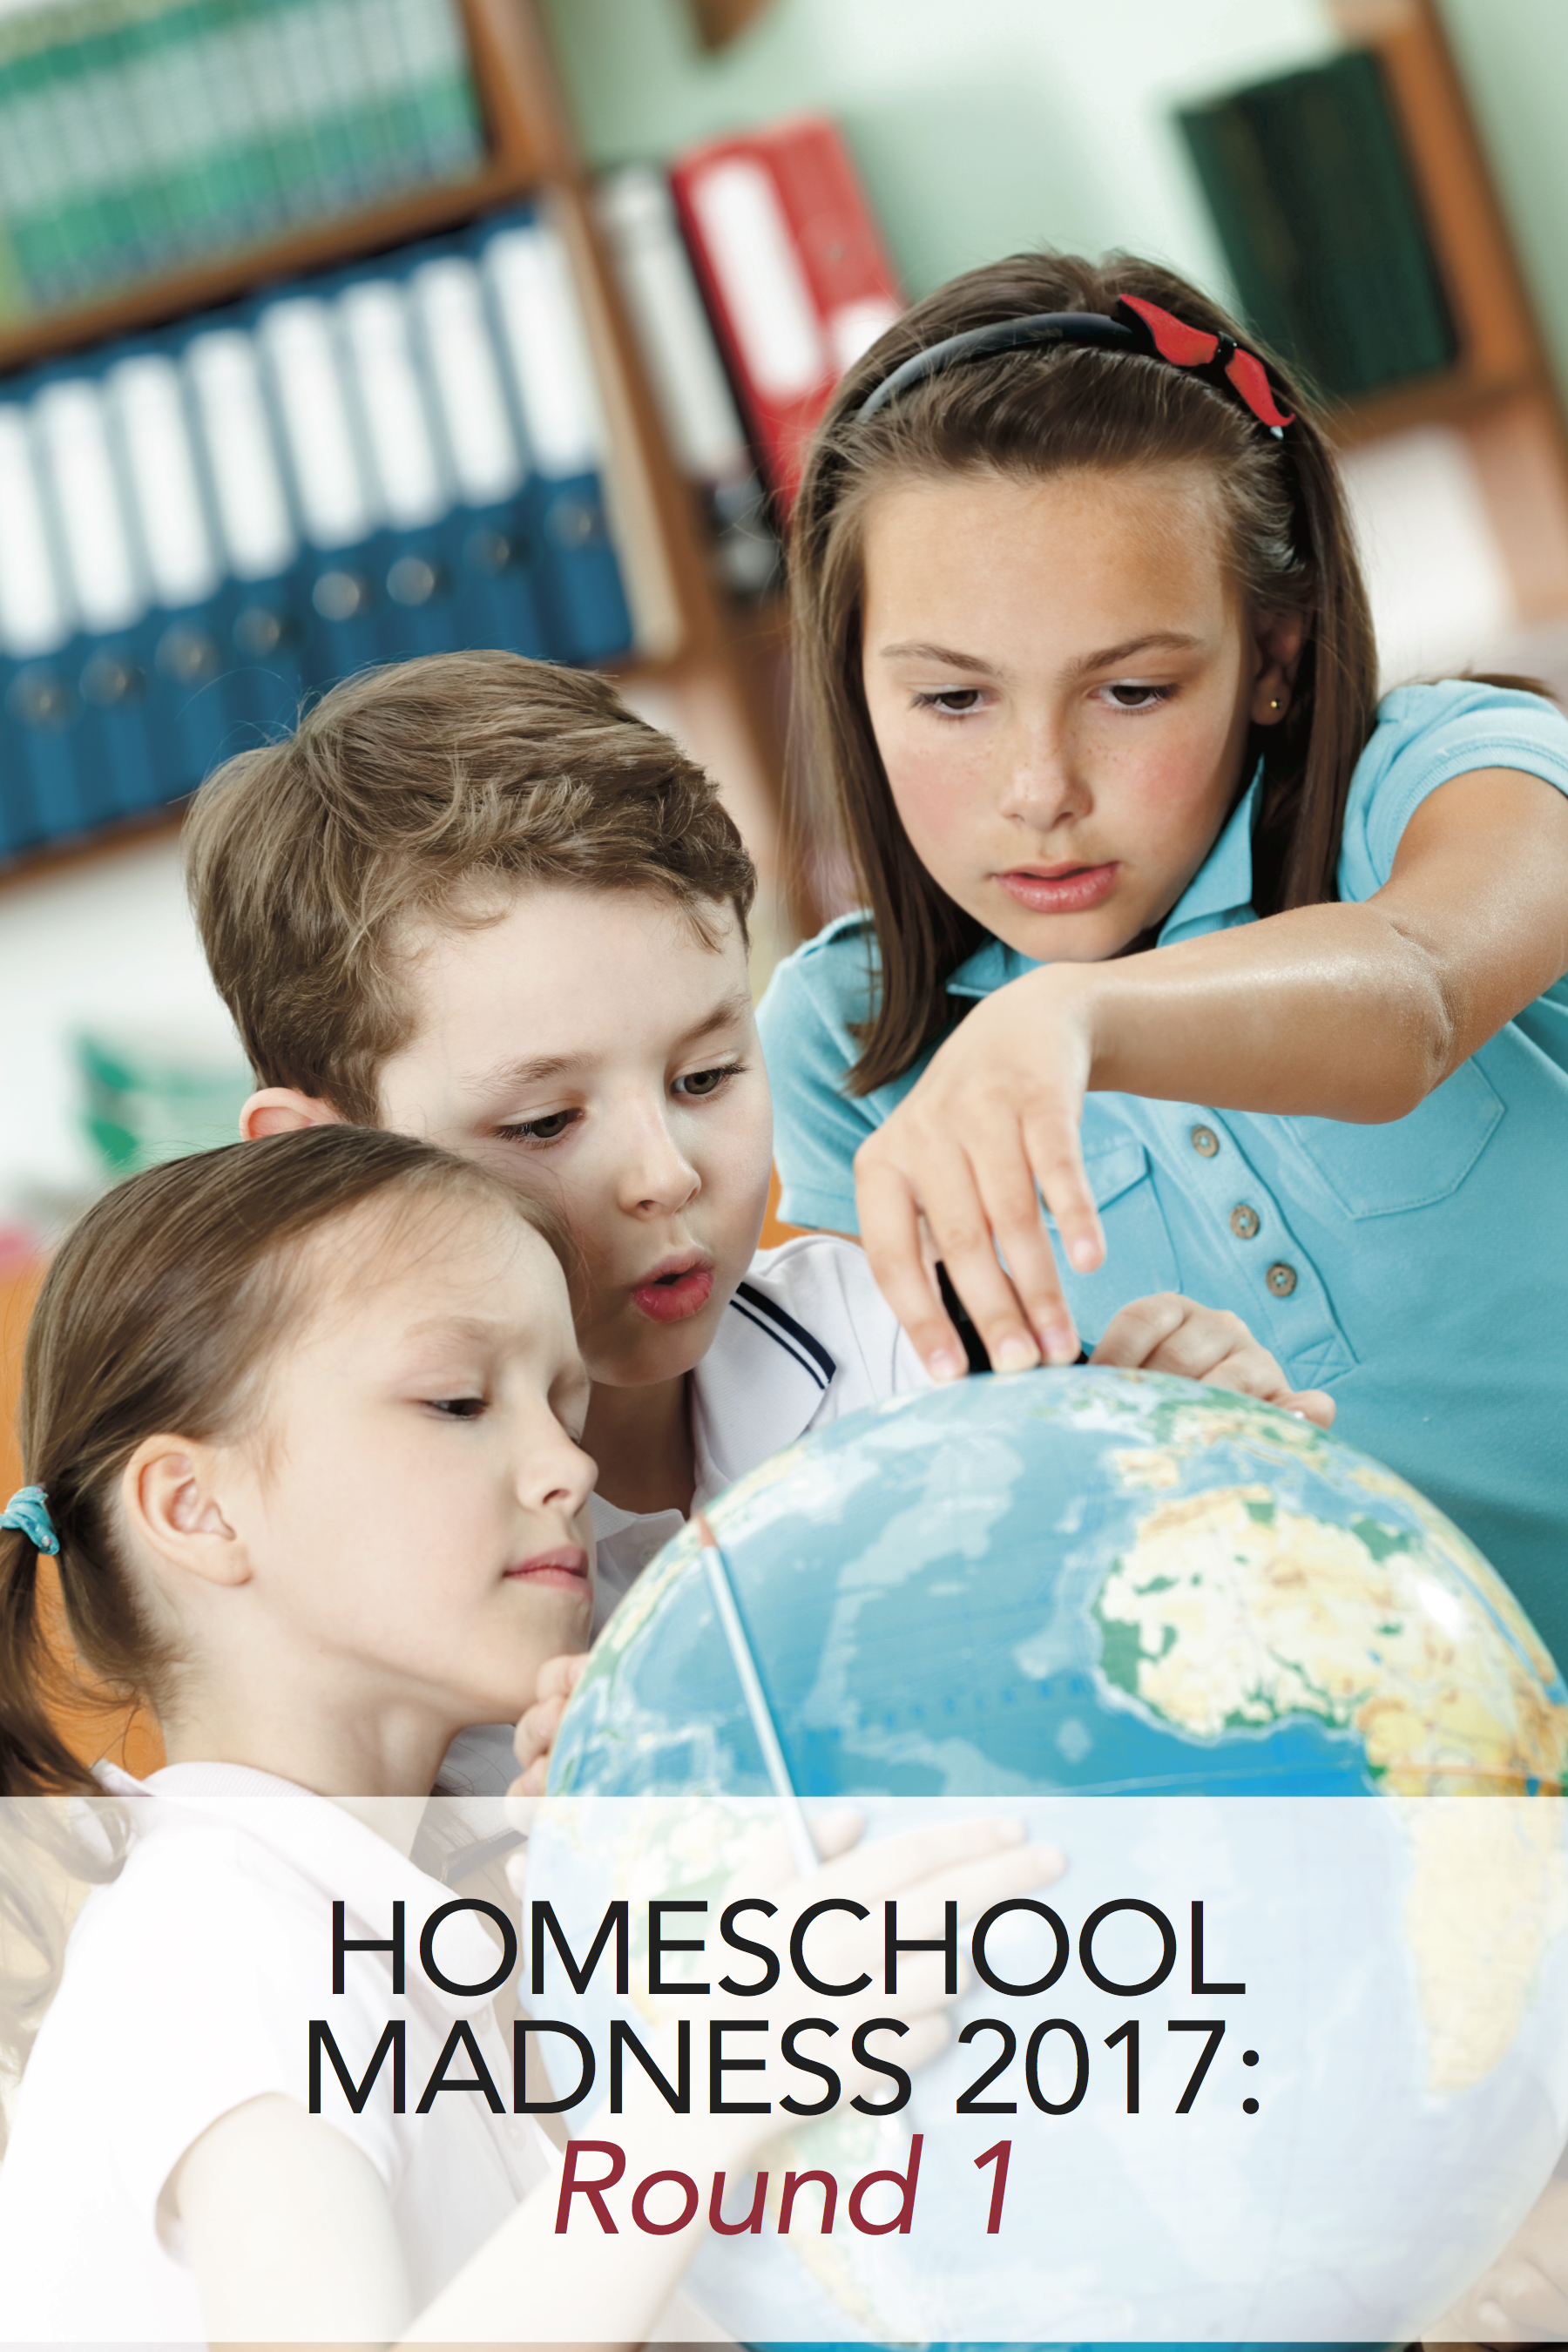 What's the most homeschooler-y thing ever? Cast your vote to find out!